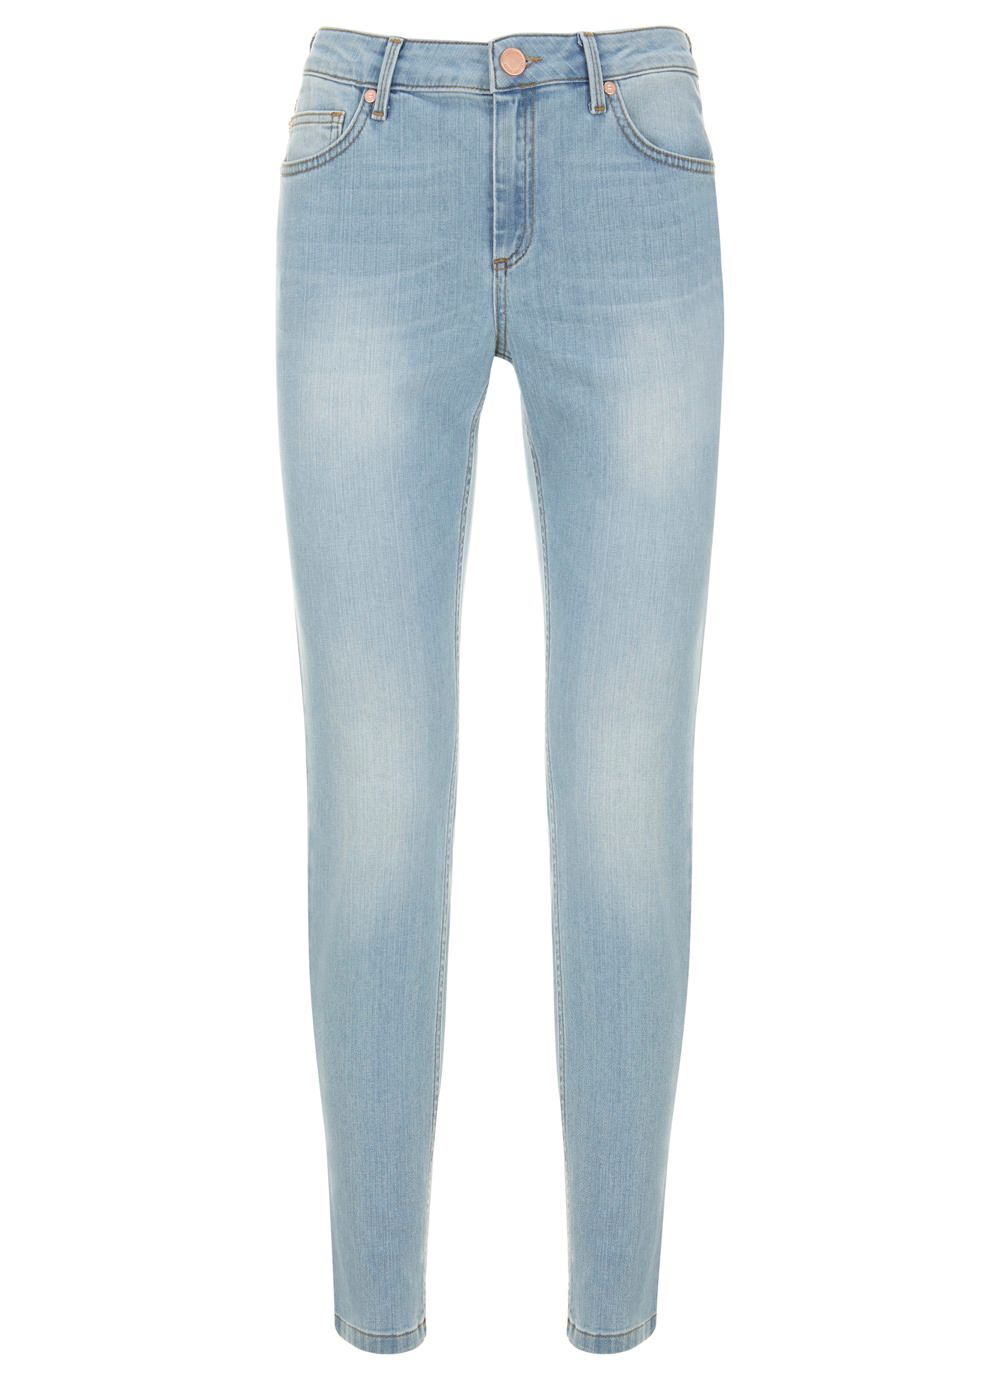 Light Washed Jean